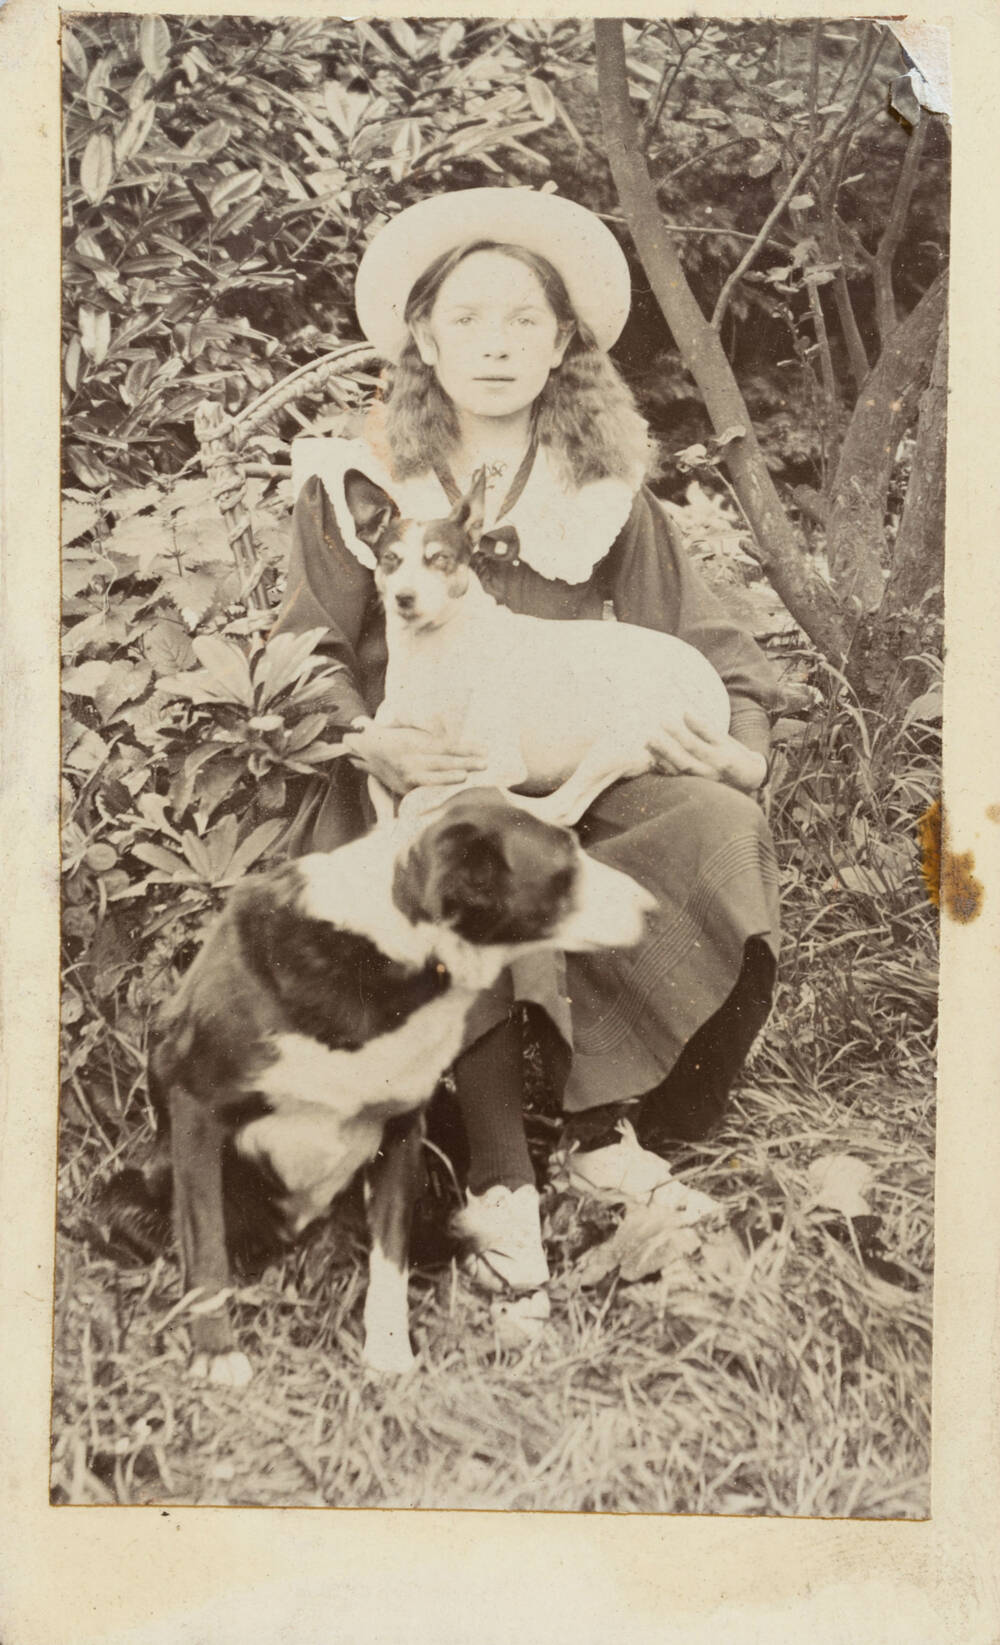 A black and white photo of a young woman wearing a hat sitting outside. She has a white dog on her lap and a dog at her feet.